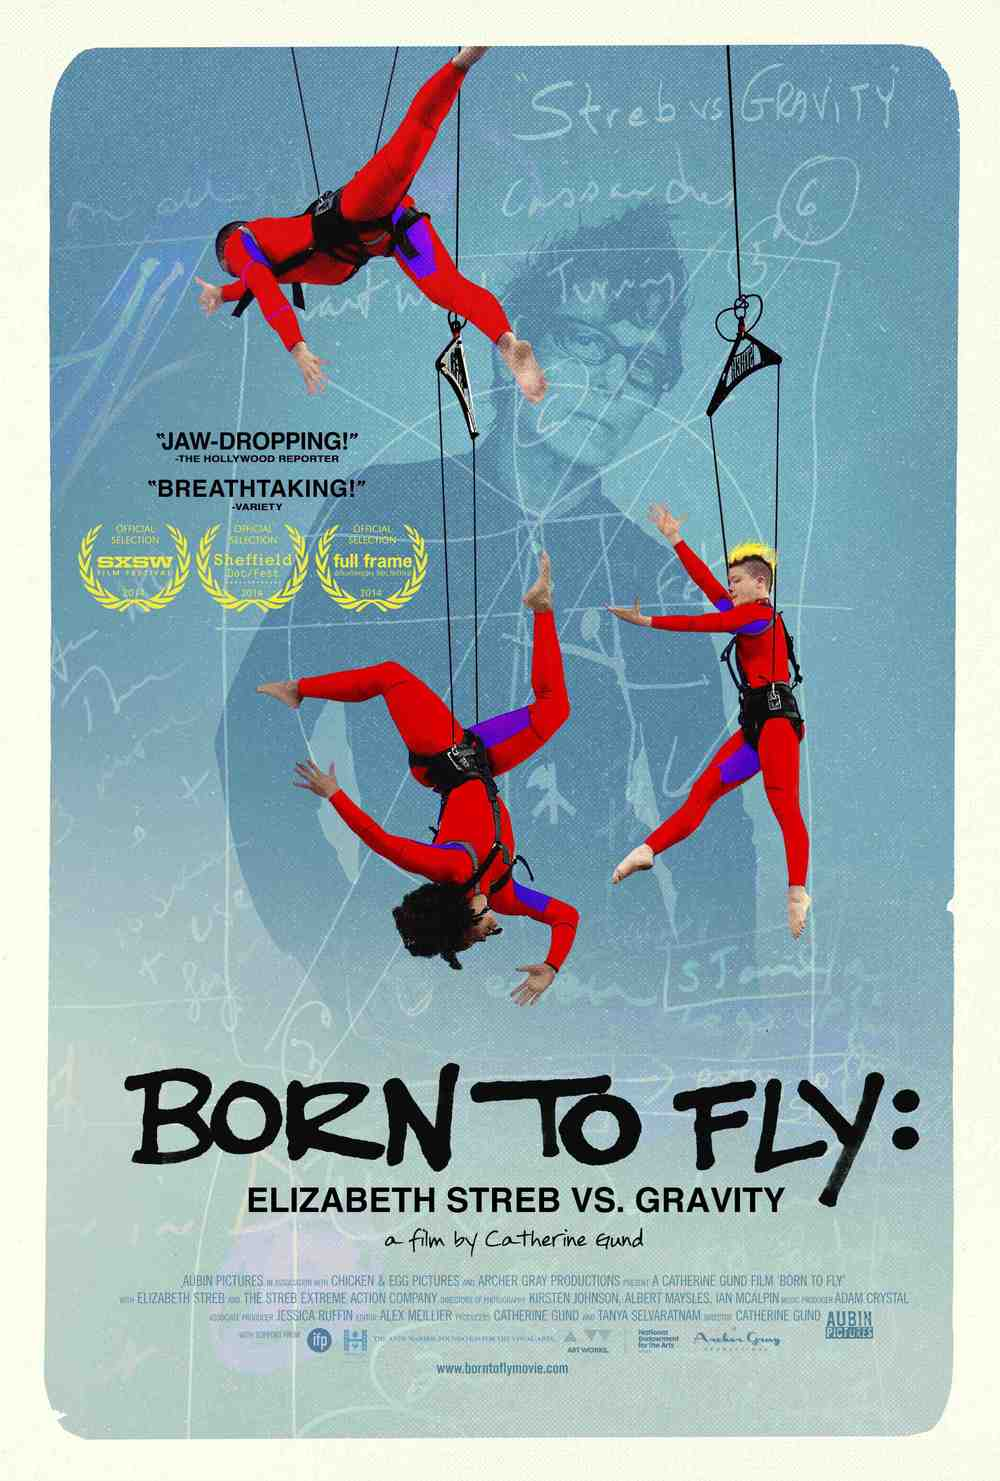 BORN TO FLY: ELIZABETH STREB VS. GRAVITY poster, dimensions 24 x 36, $20   Revealing the passions behind the dancers' bruises and broken noses, BORN TO FLY offers a breathtaking tale about the necessity of art, inspiring audiences hungry for a more tactile and fierce existence. Learn more:  borntoflymovie.com .  Ships via USPS in 2 to 9 business days.